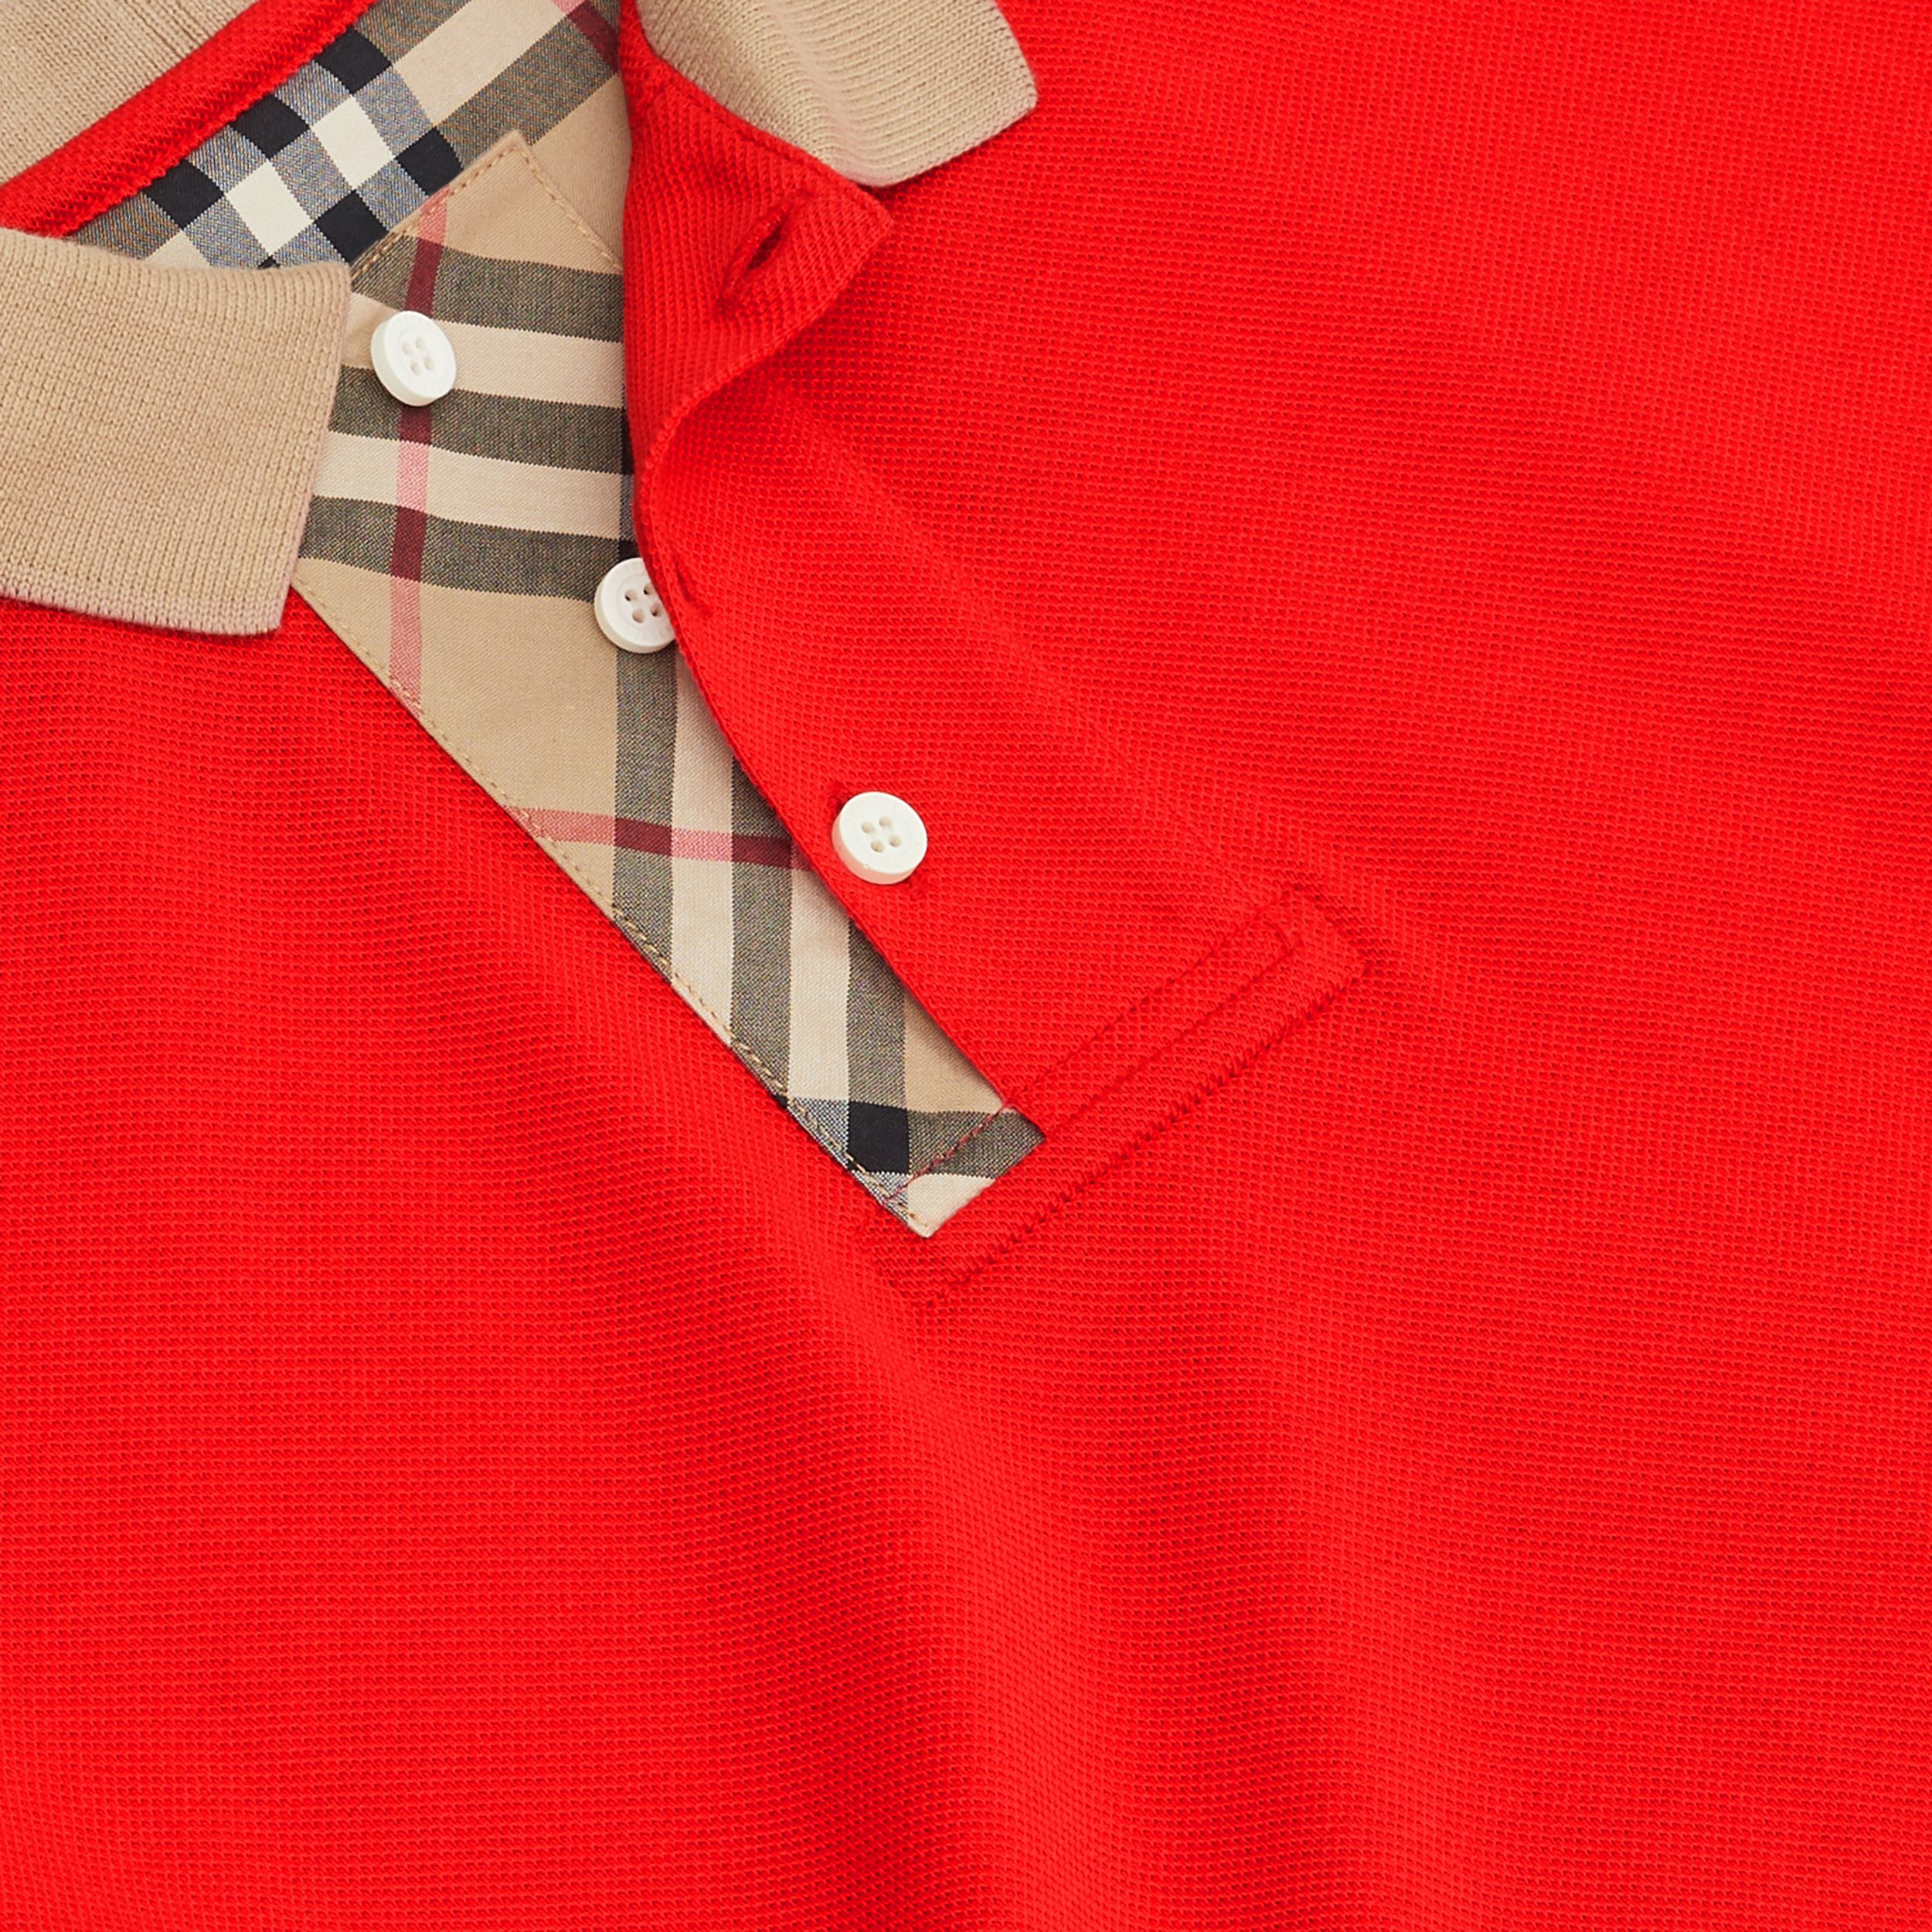 Vintage Check Trim Cotton Polo Shirt in Bright Red | Burberry Canada - 2